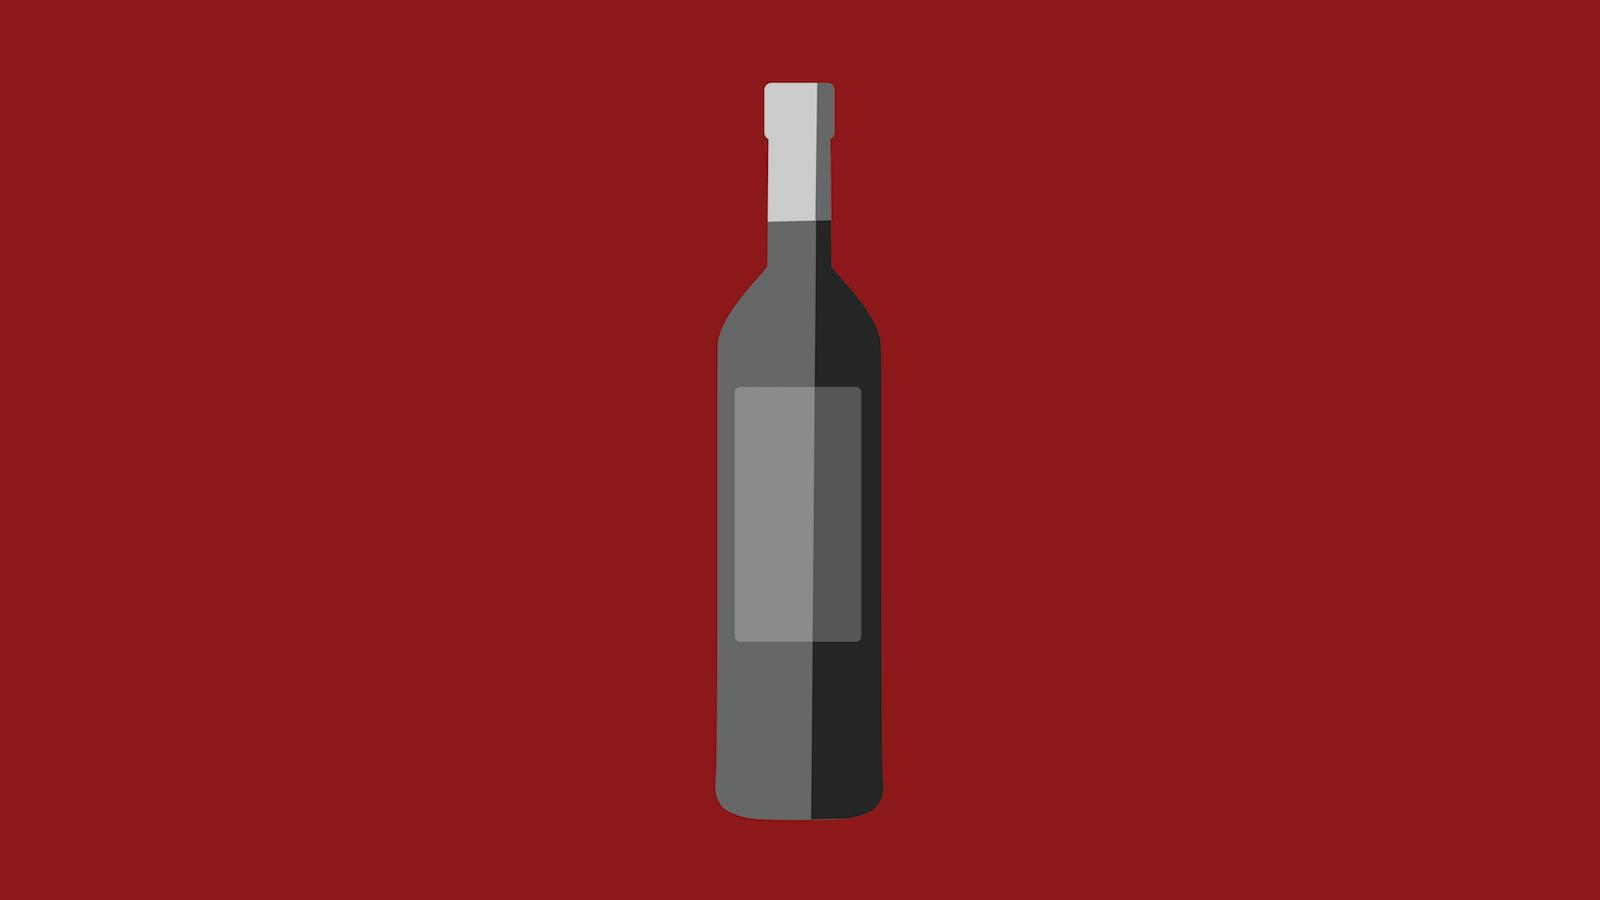 What's the best way to clean mold from a bottle of wine?